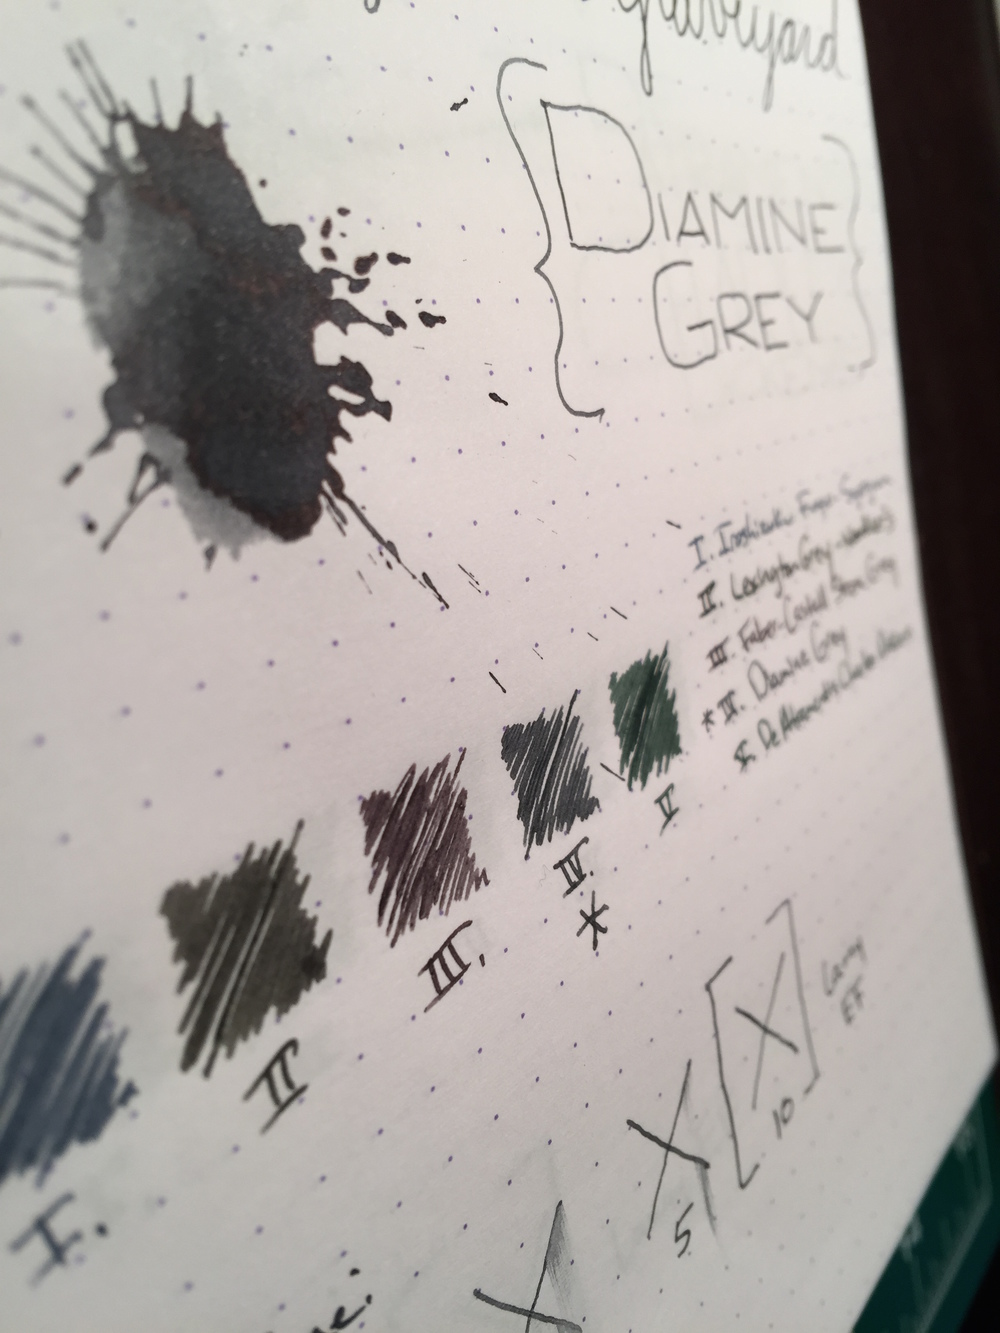 diaminegrey-header